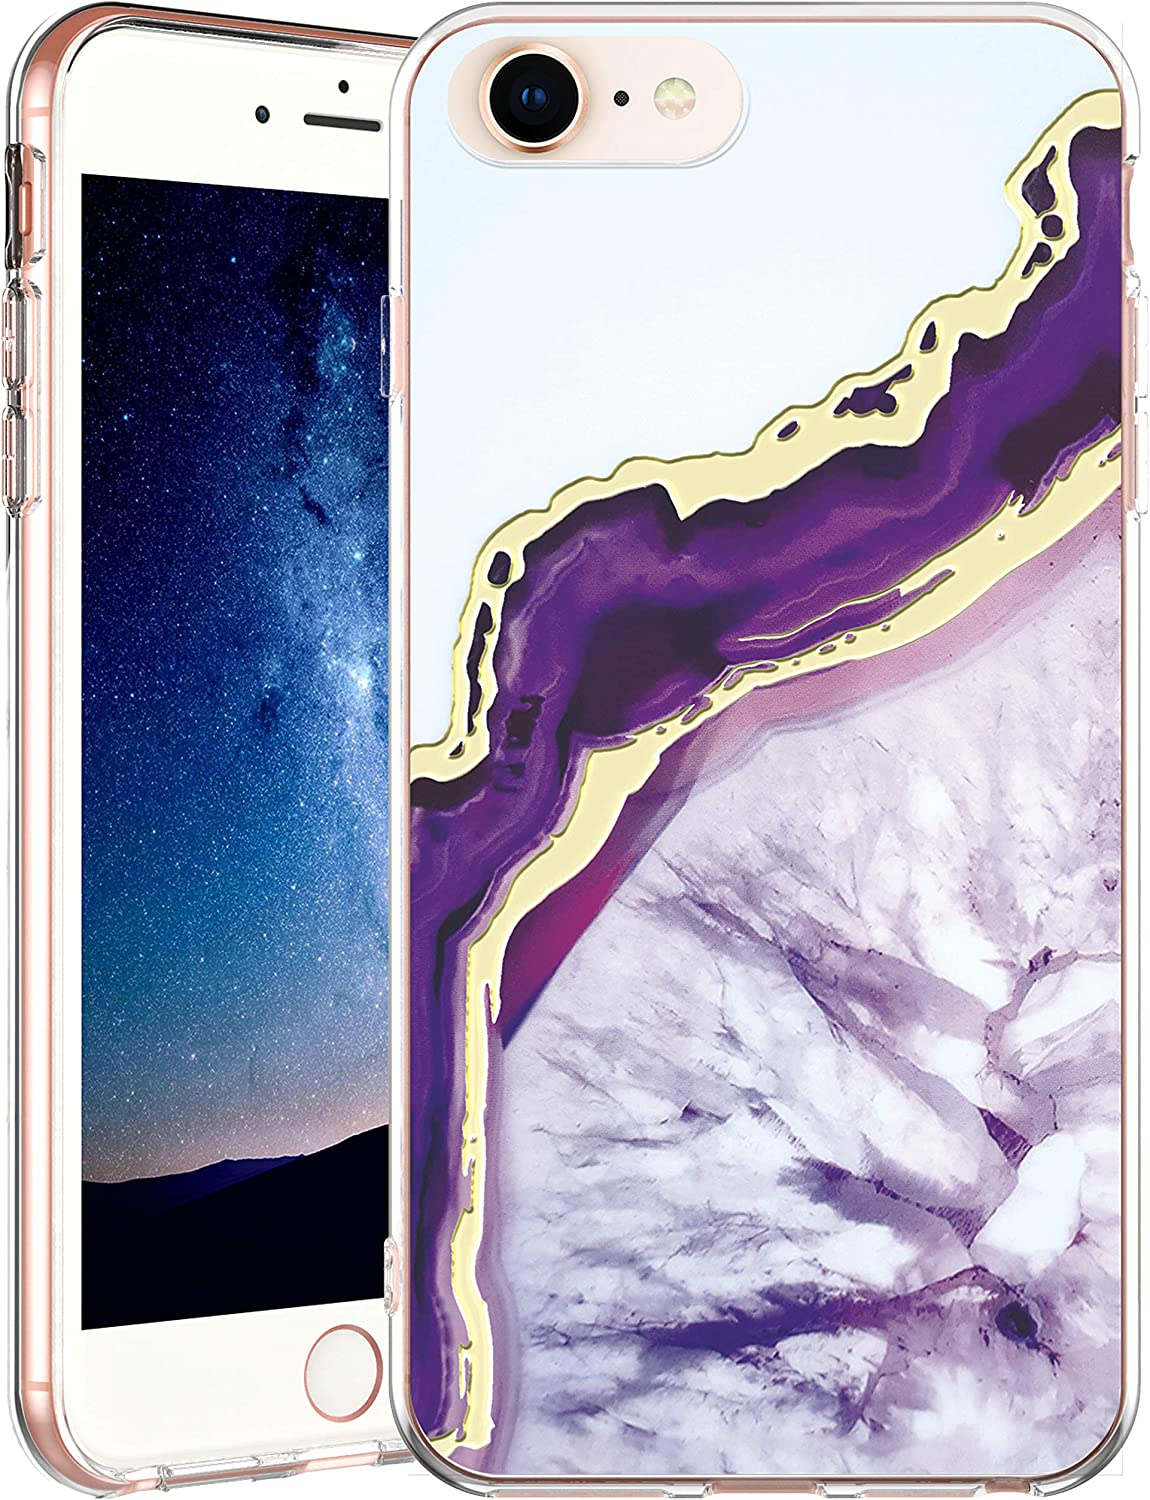 IN4U iPhone SE 2020 / iPhone 8 / iPhone 7 / iPhone 6S Case, Hard Back Marble Design Gold Foil 3D Layered Raised Edge Soft TPU Bumper Cover for iPhone SE 2020/8 /7/6S Case (Purple Crystal Agate)